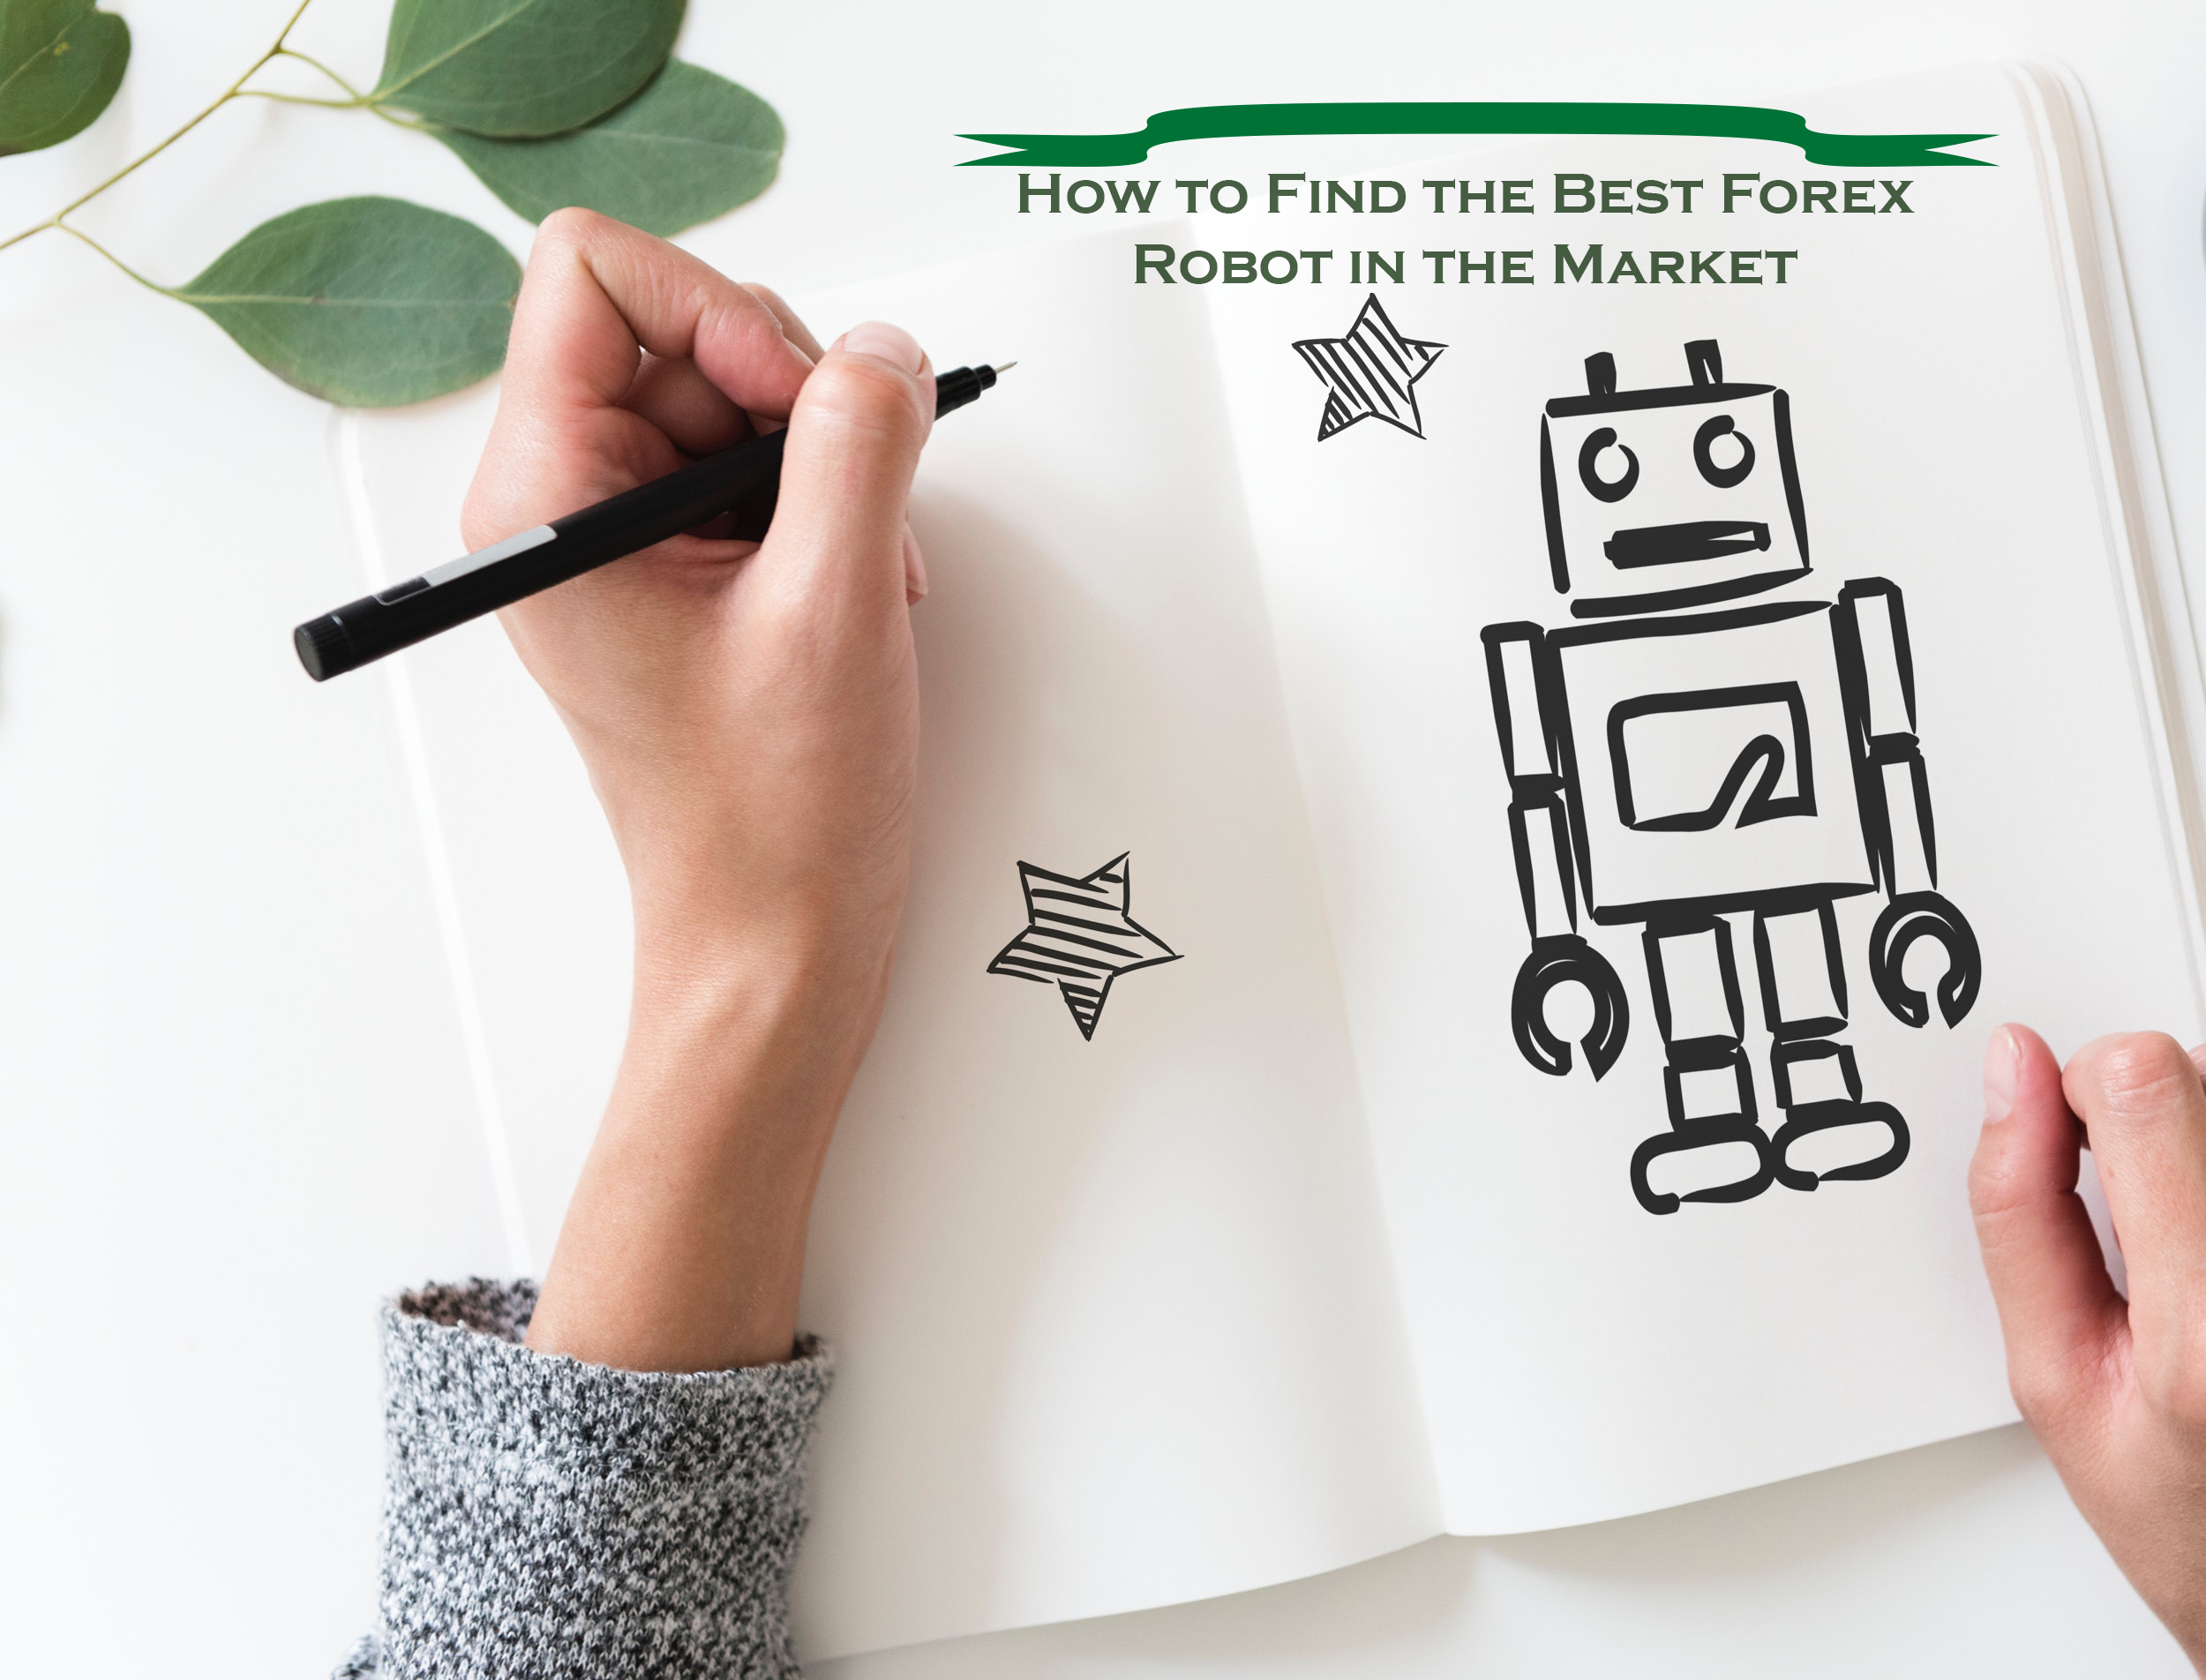 How_to_Find_the_Best_Forex_Robot_in_the_Market